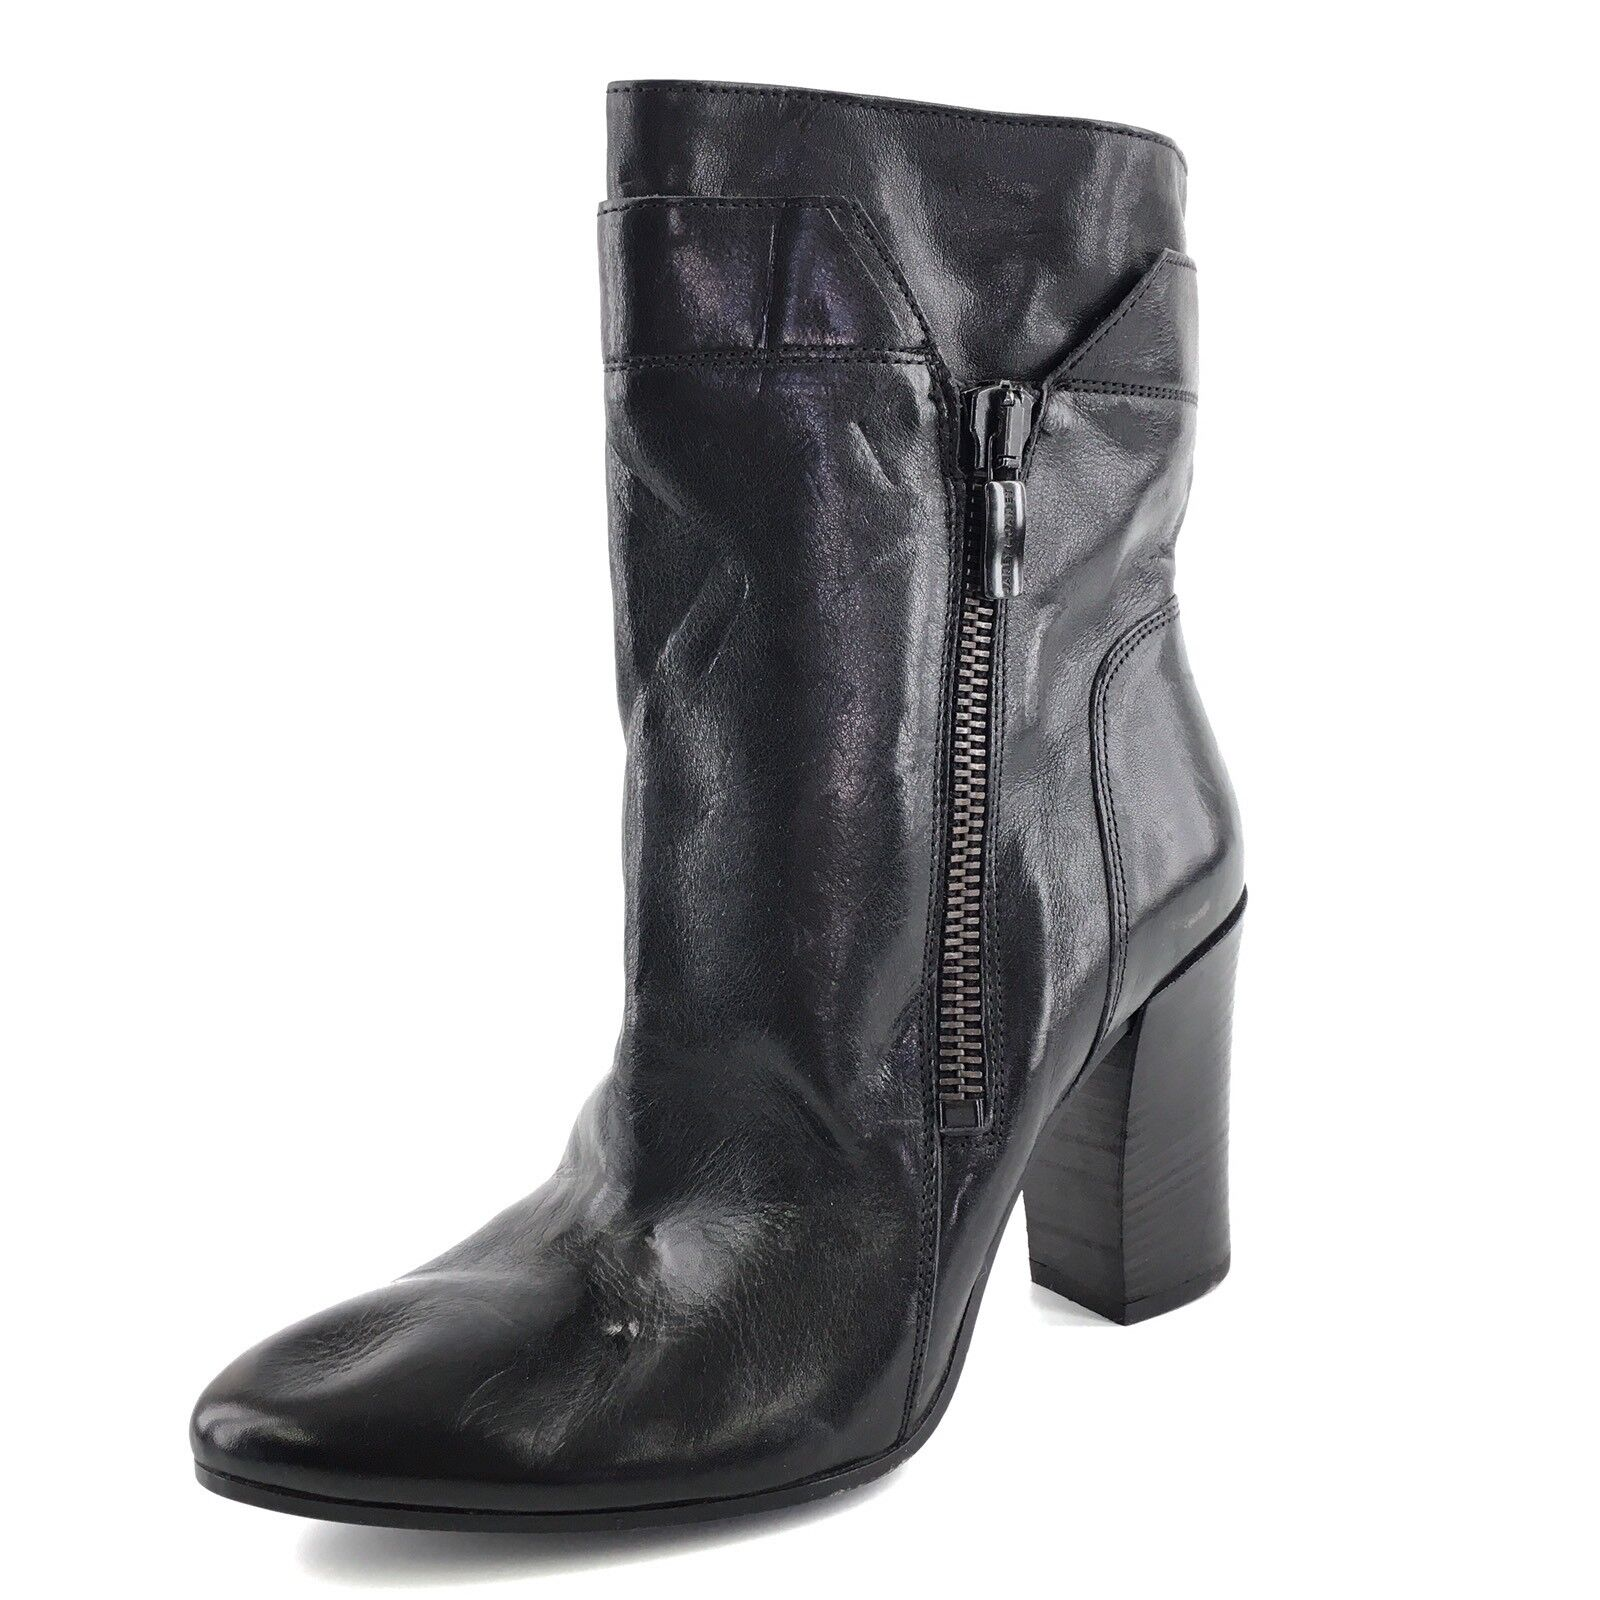 Janet & Janet Black Leather Mid Calf Short Boots Women's Size M 280*